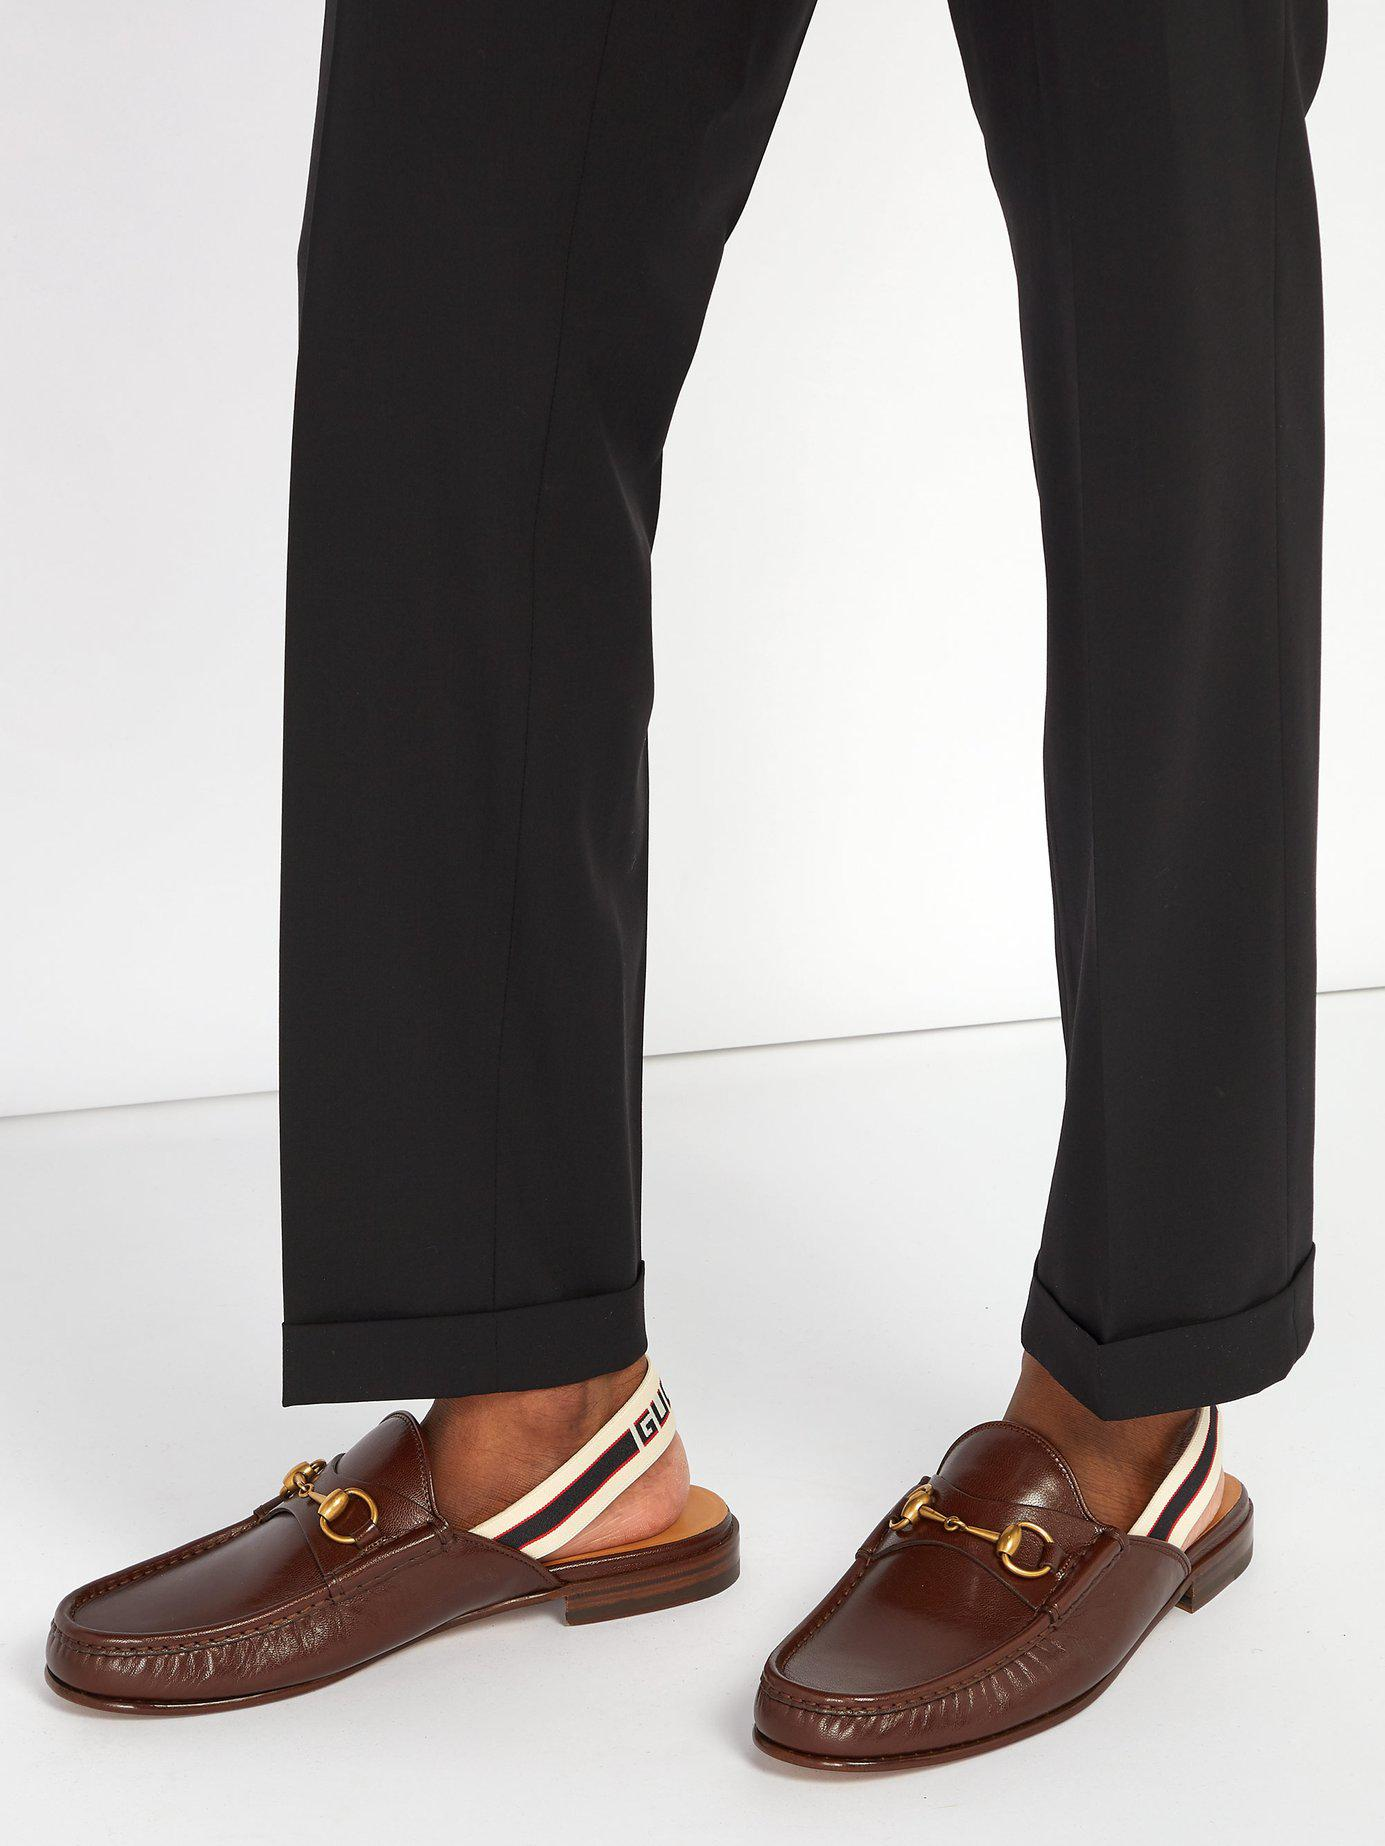 168115edd75 Lyst - Gucci Roos Horsebit Slingback Strap Leather Loafers in Brown for Men